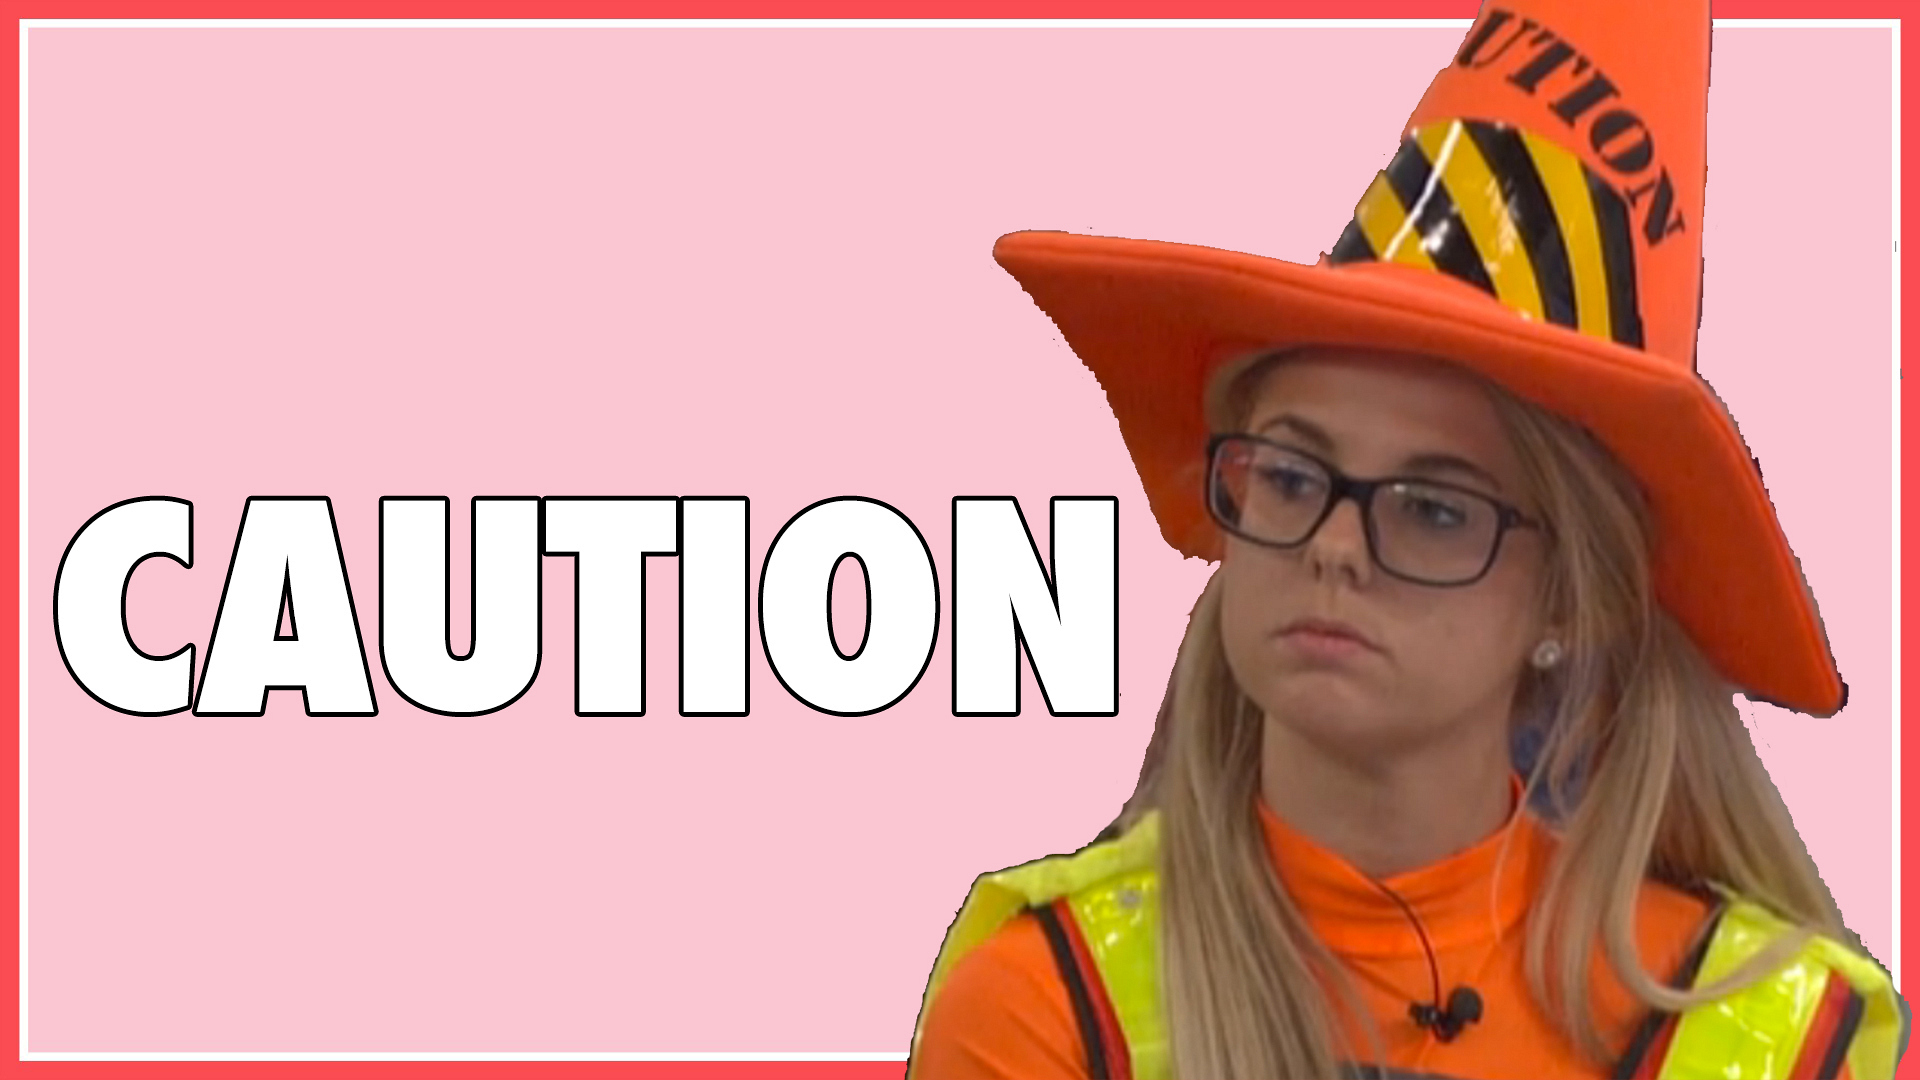 Question: What did Nicole's #SuperSafety hat say?